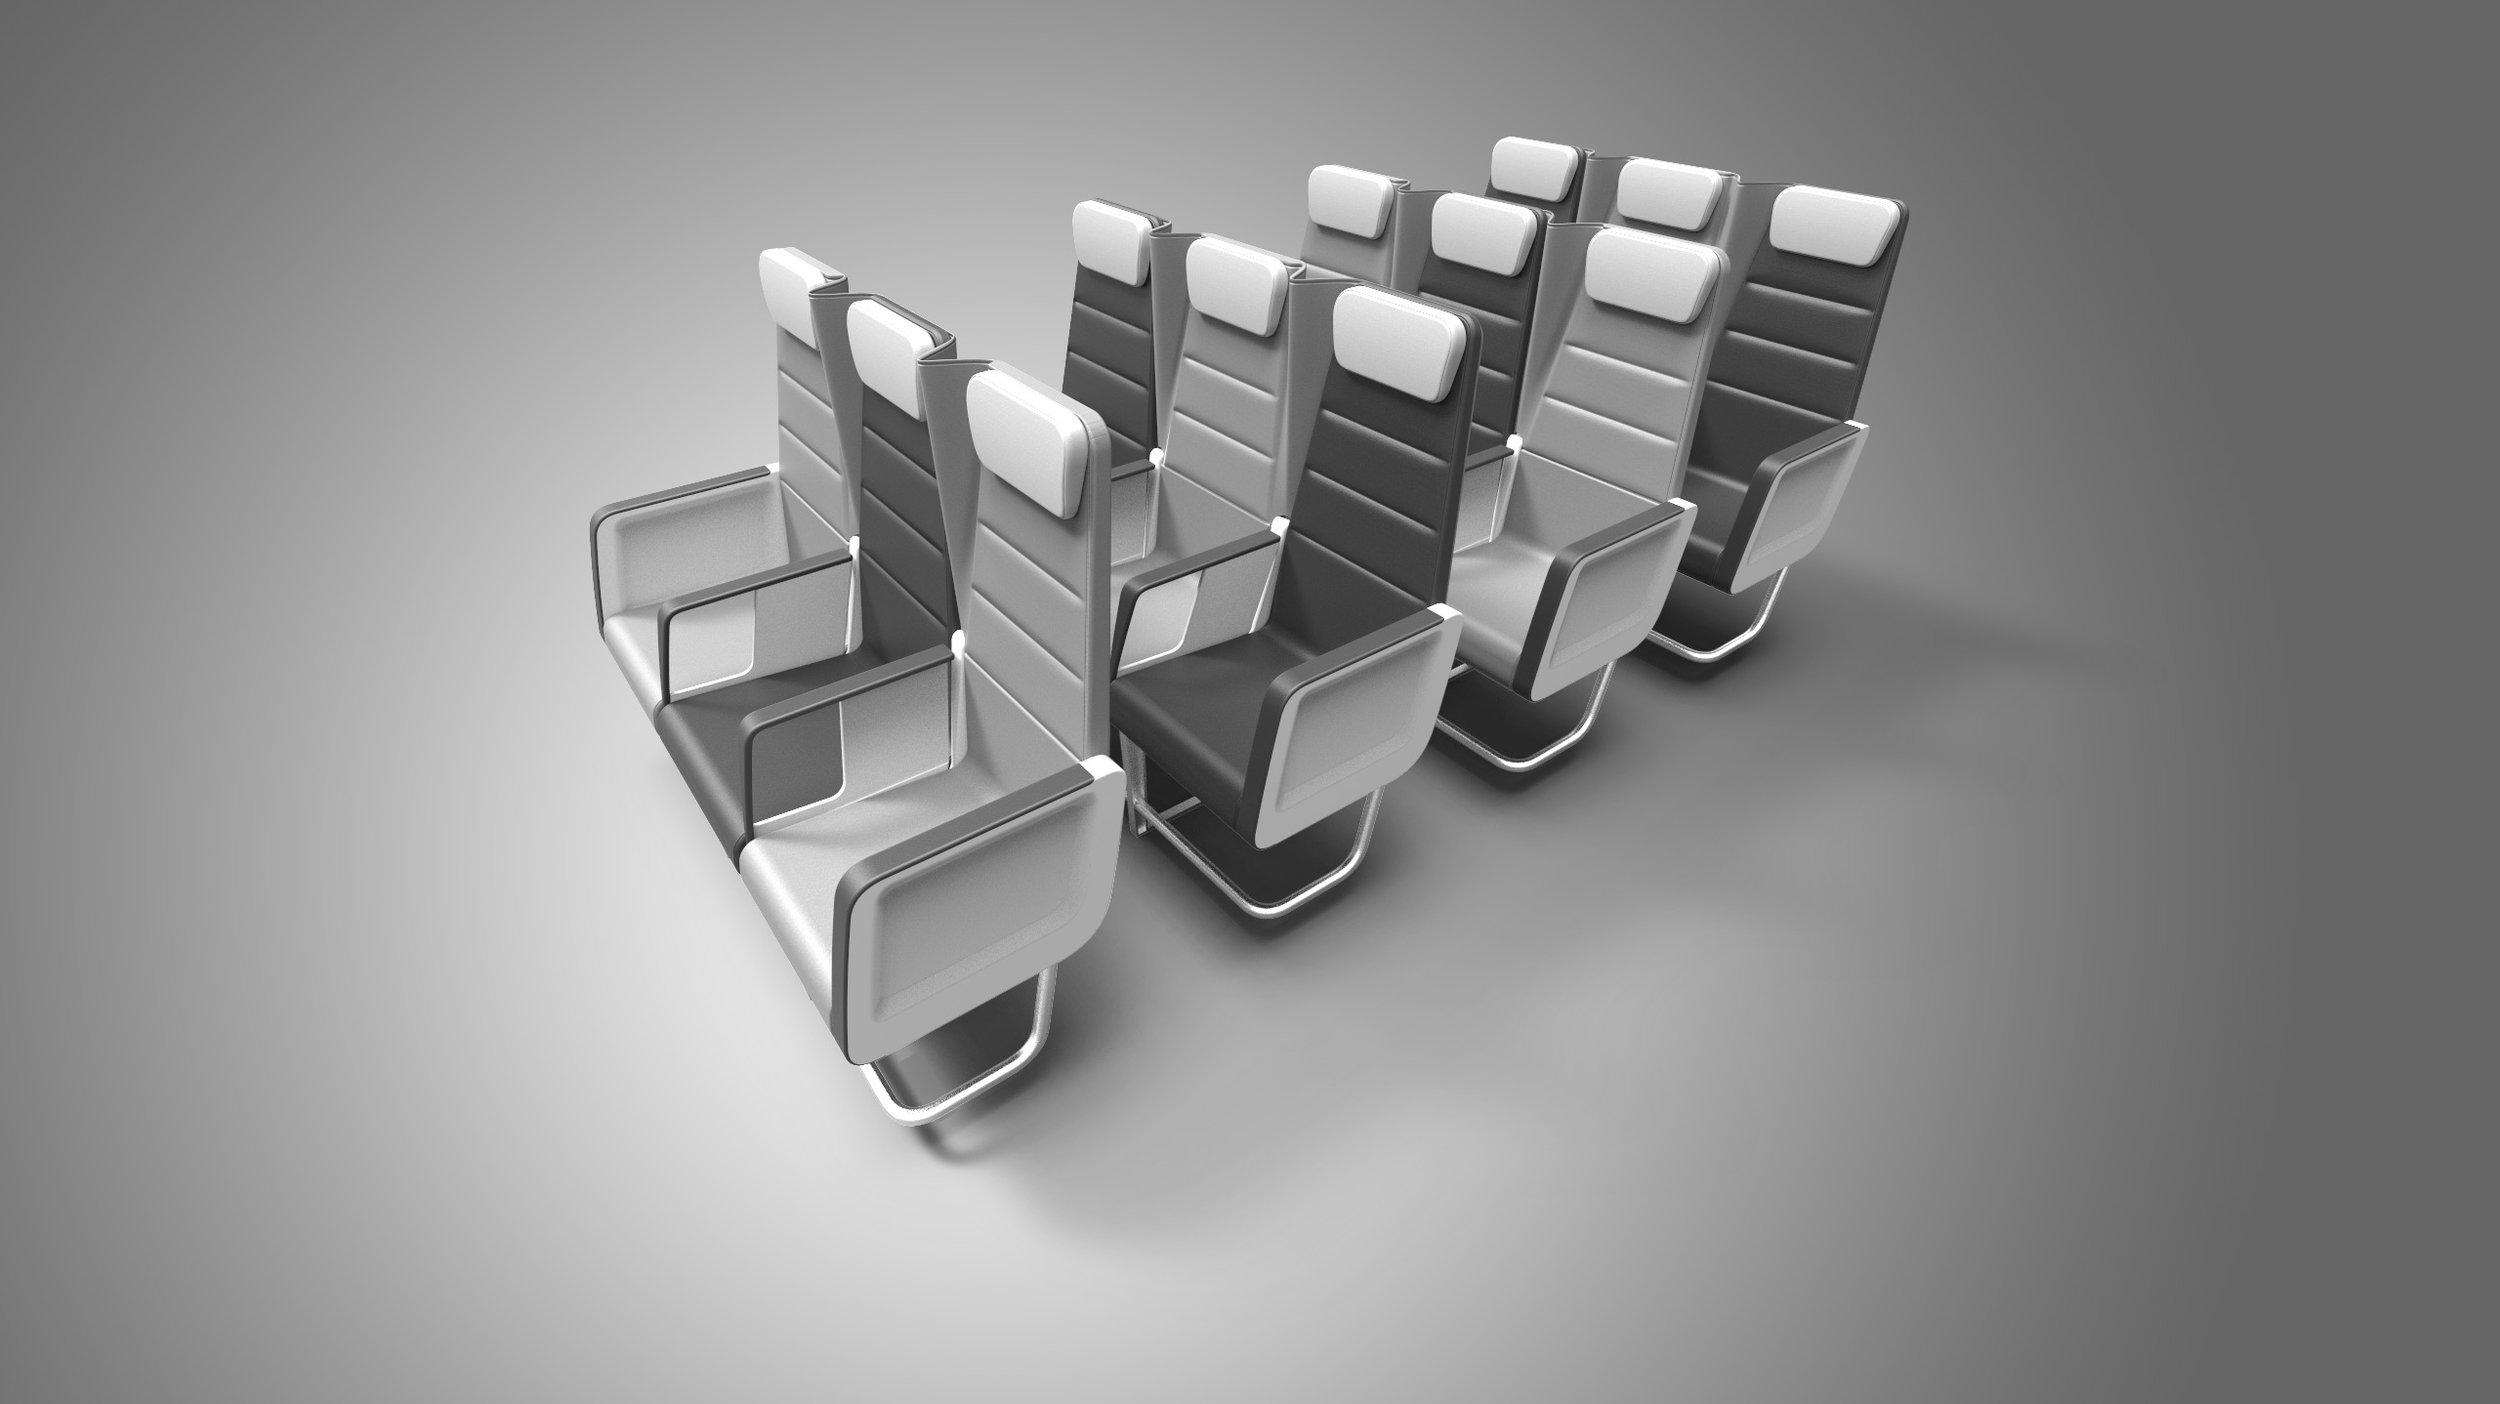 Best of Both Worlds - Checkerboard enables operators to address the needs of two very different segments without compromising seat density or customer appeal. In its economy configuration, Checkerboard functions as a typical coach class seat, with a seat-back mounted table, high back literature pocket that maximizes legroom, and a high pivot recline that reduces intrusion into the living space of the passenger behind.